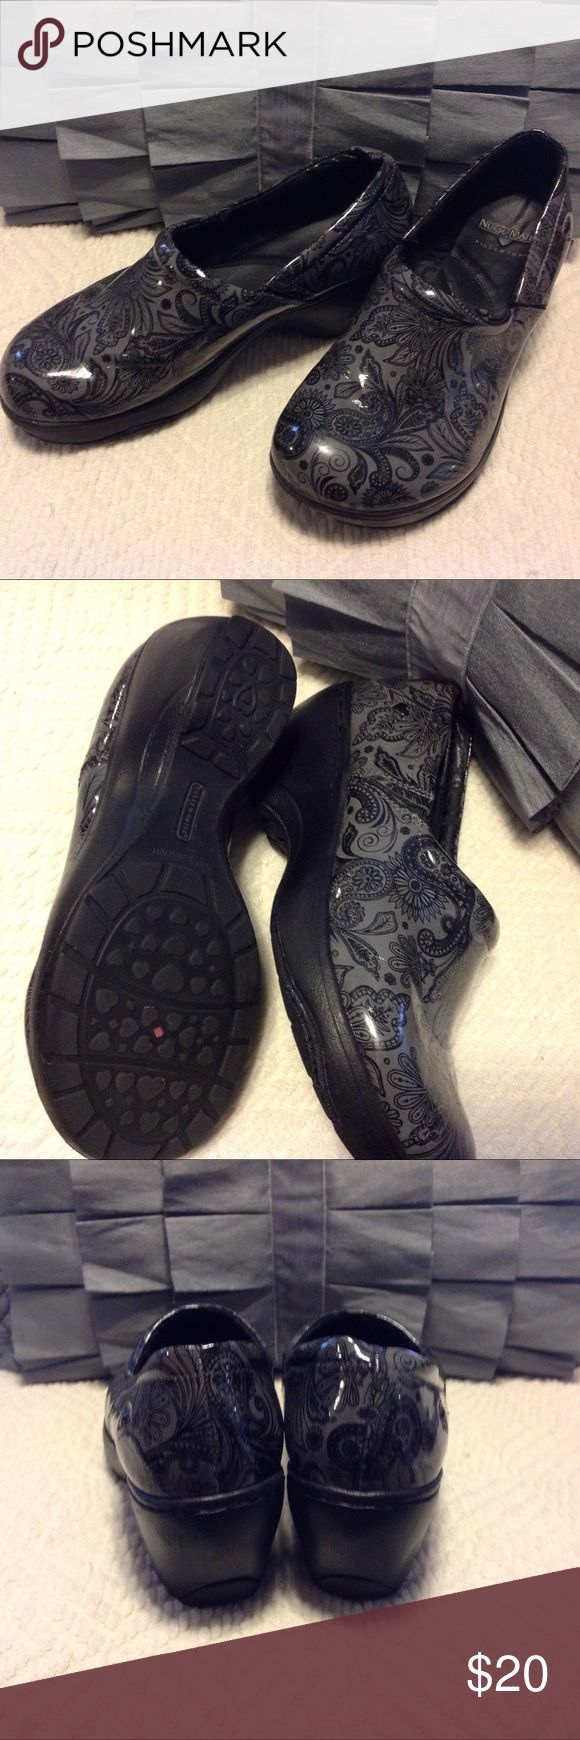 Nurse Mate Pillowtop Clogs 9w Black and grey pattern patent leather Nurse Mate Clogs size 9 Wide.  Very lightweight.  True to size. Very comfortable.  Price is FIRM. Nurse Mates Shoes Mules & Clogs